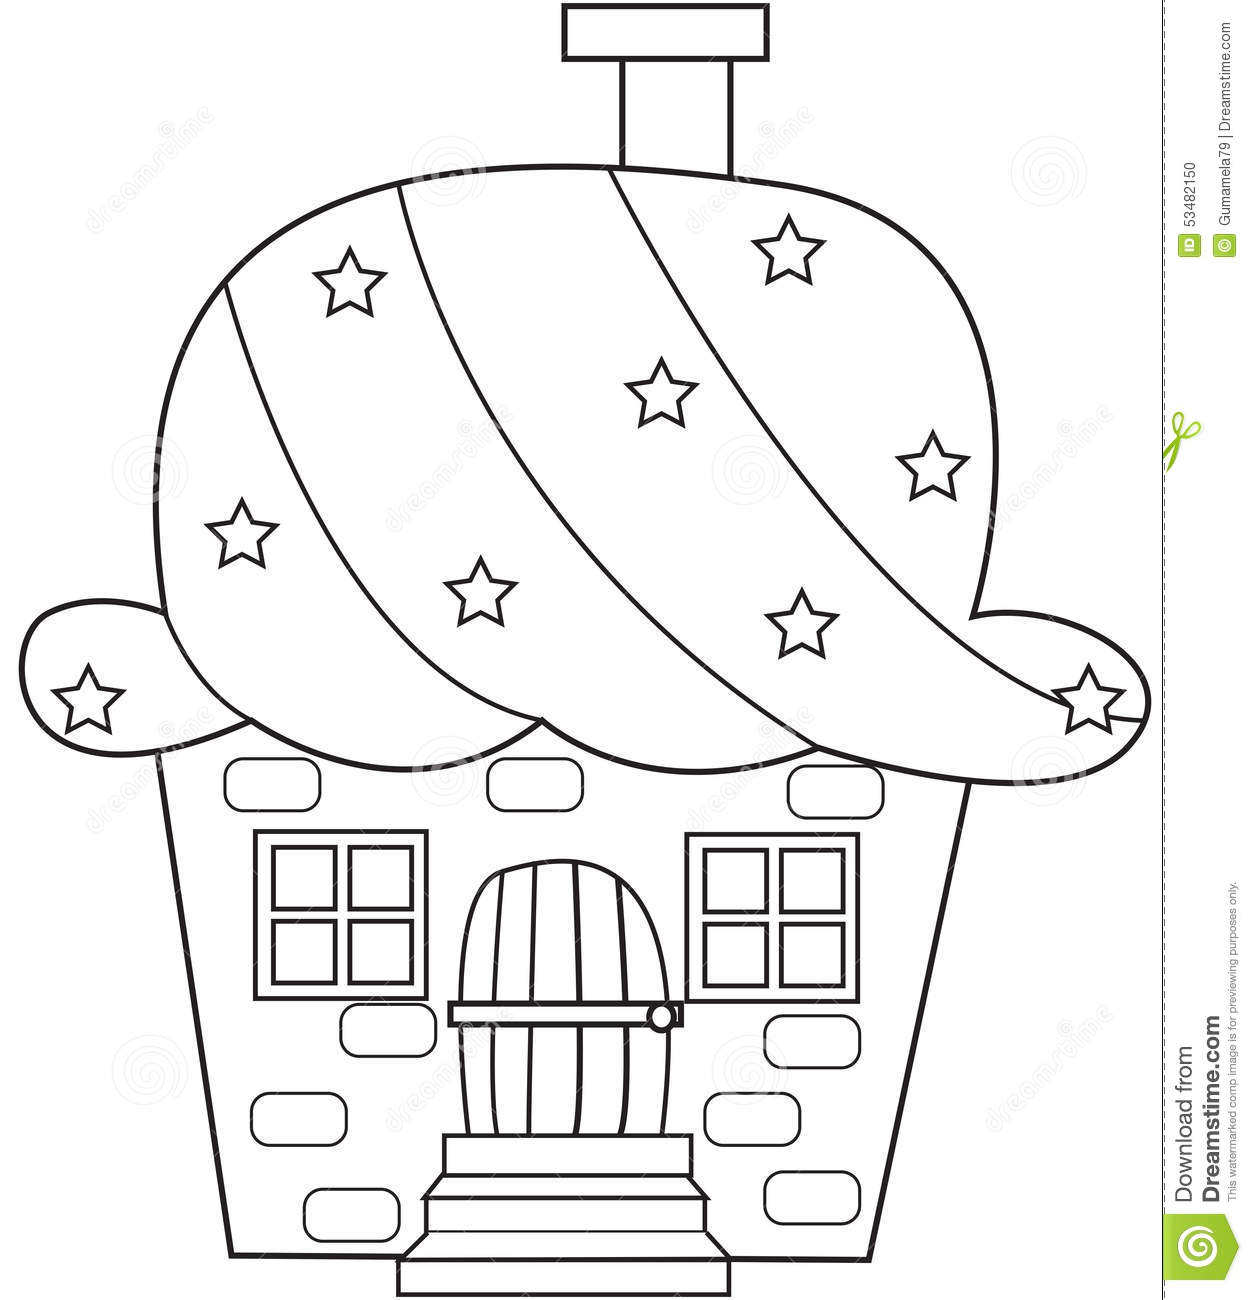 Stock Photo Cupcake House Coloring Page Image 53482150